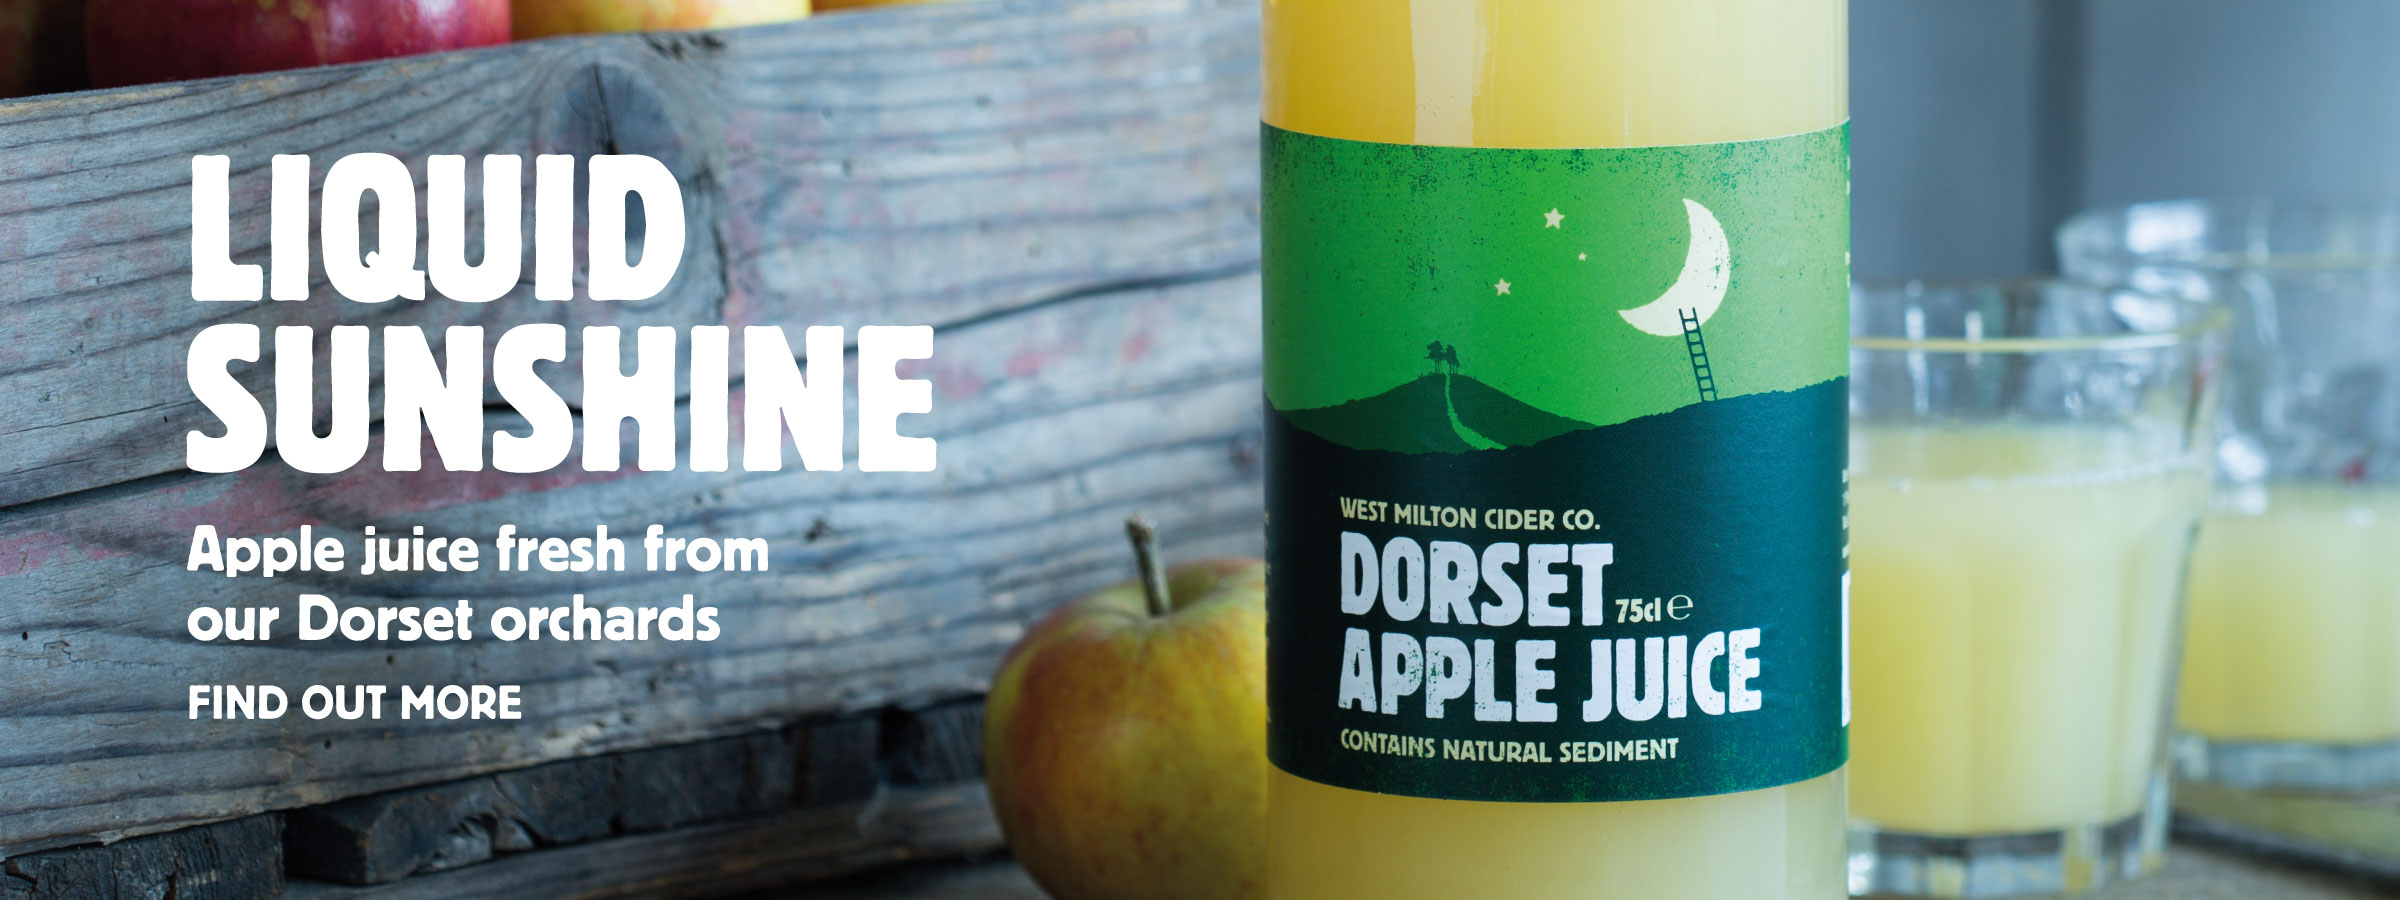 dorset-apple-juice